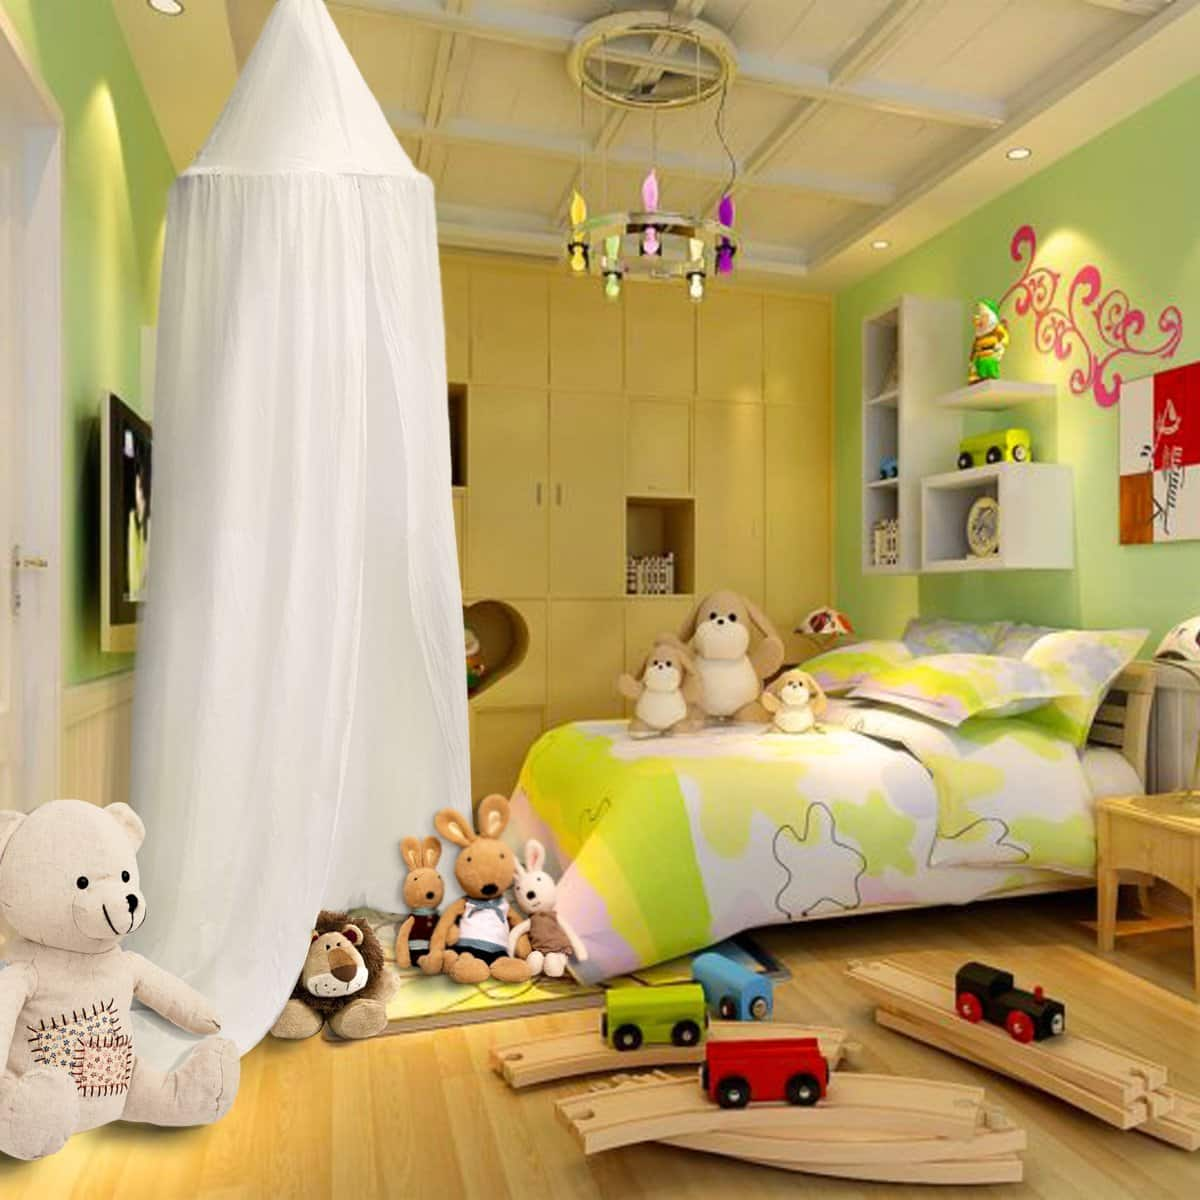 56% offer Cotton Canvas Dome Bed Canopy $15.84